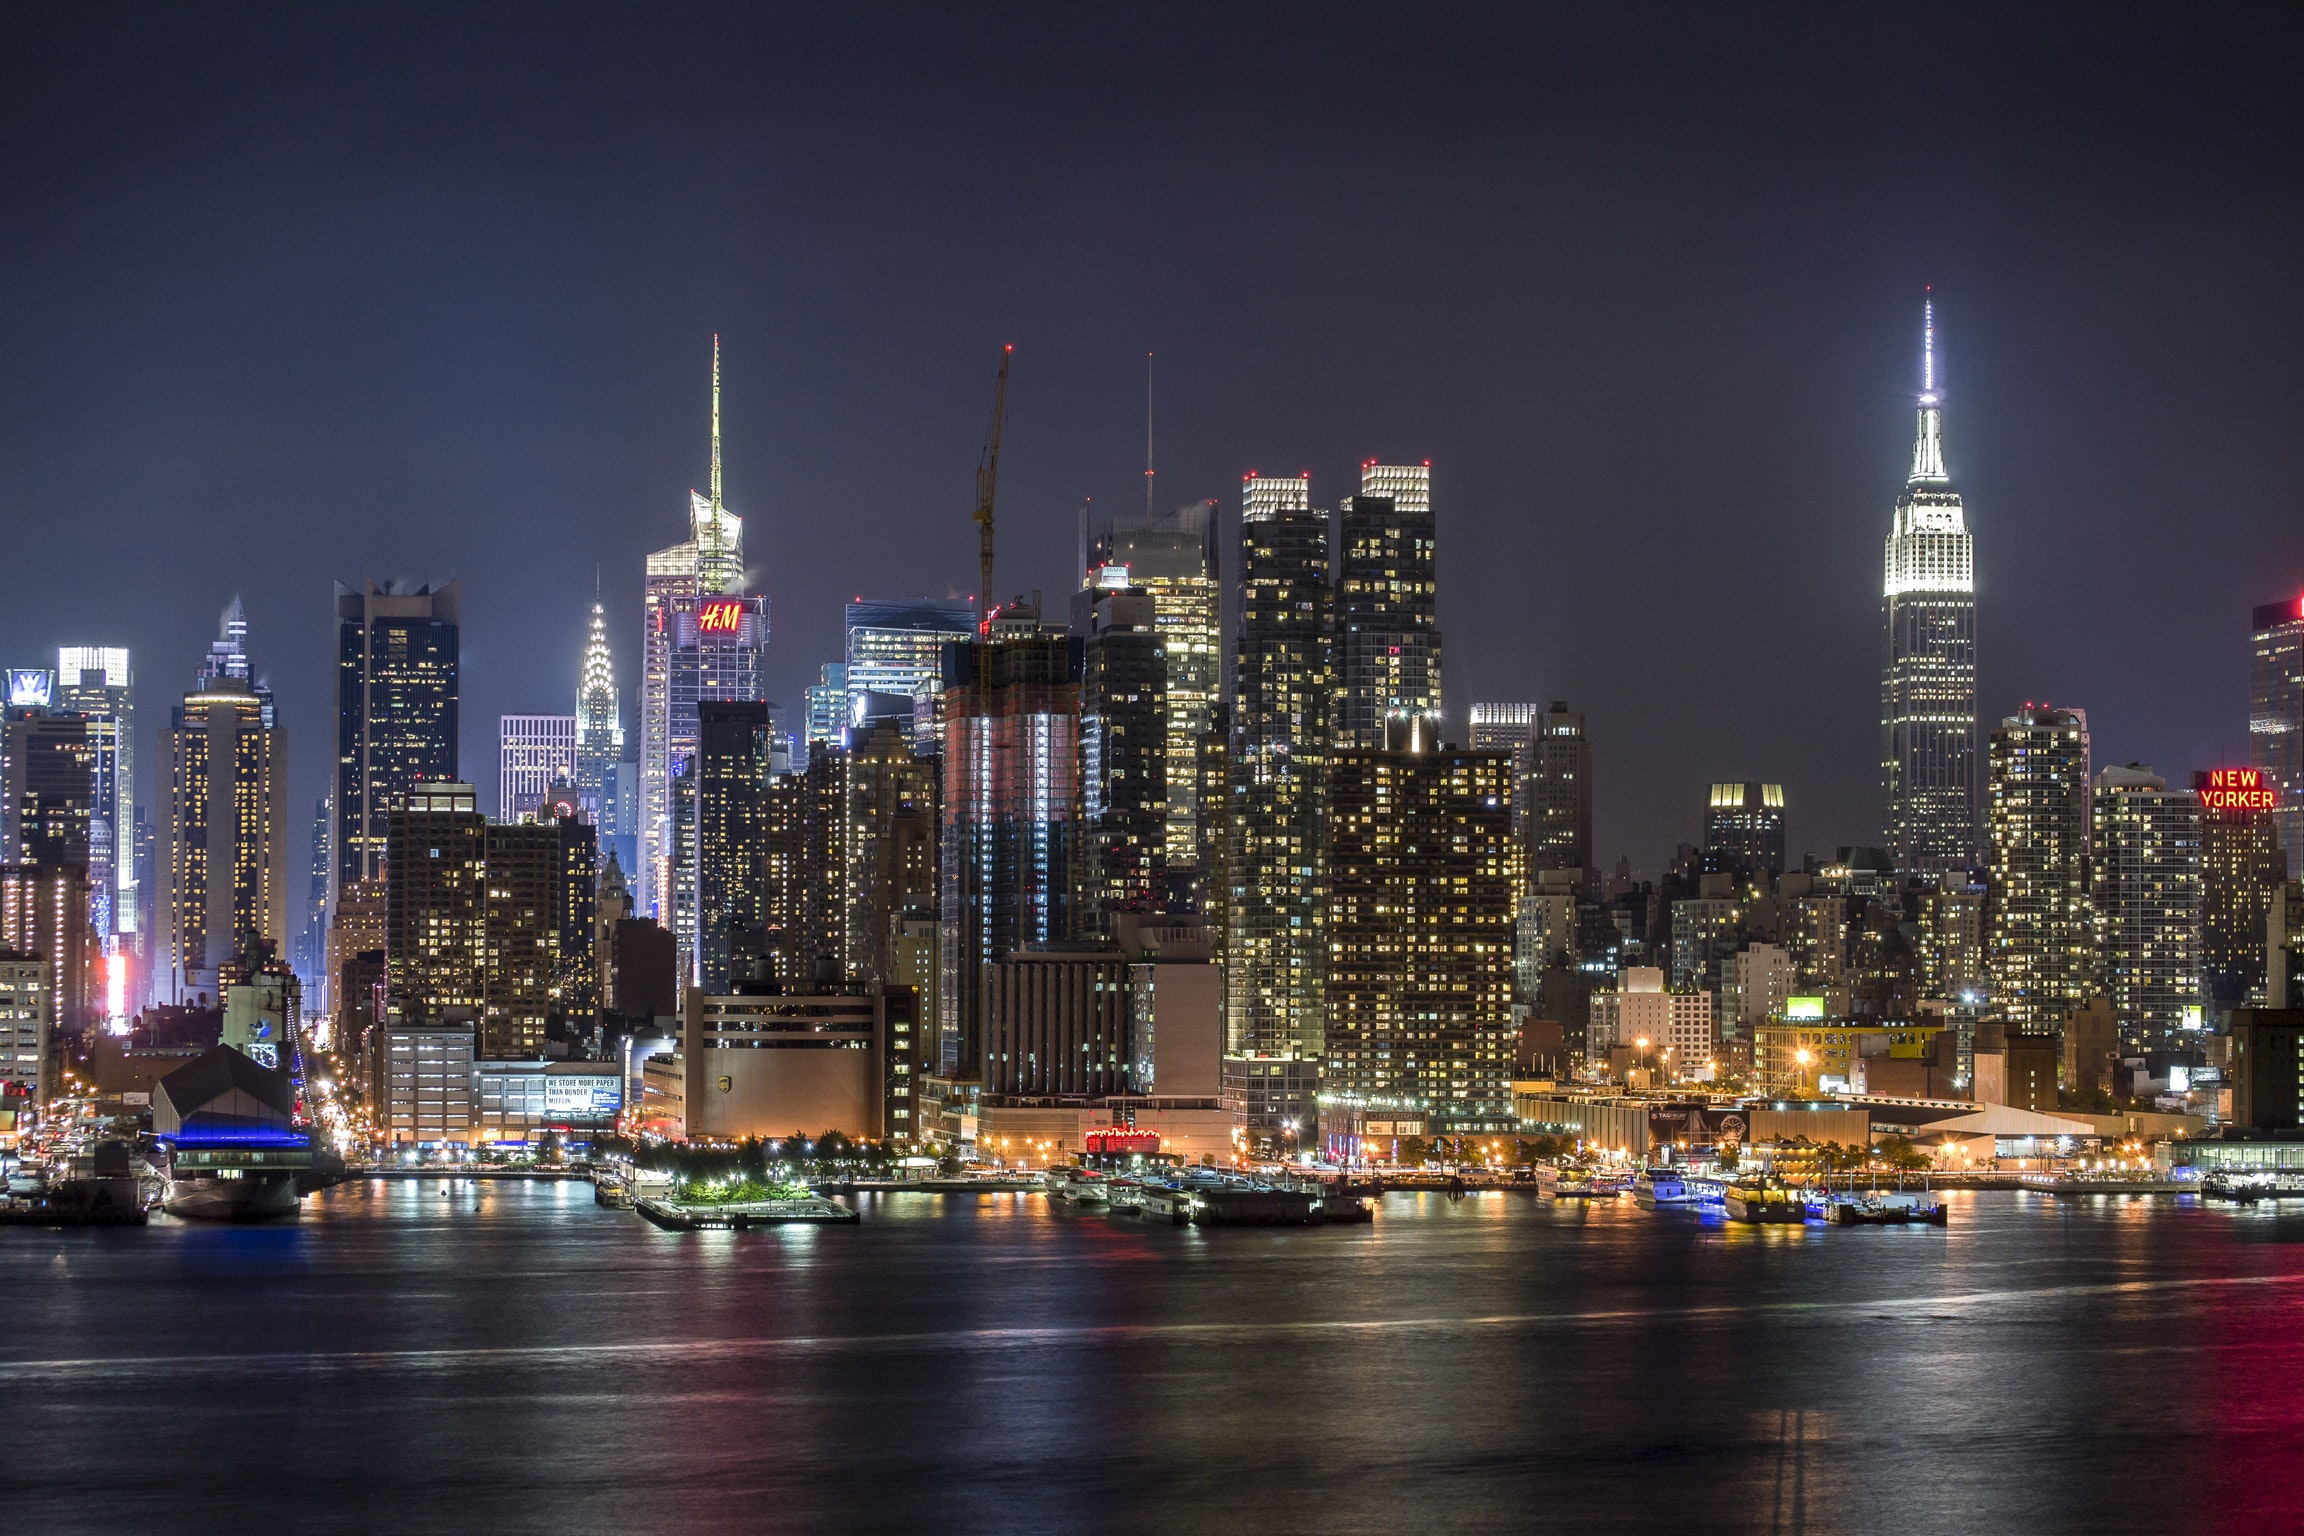 New York City Wallpaper · · Free Stock